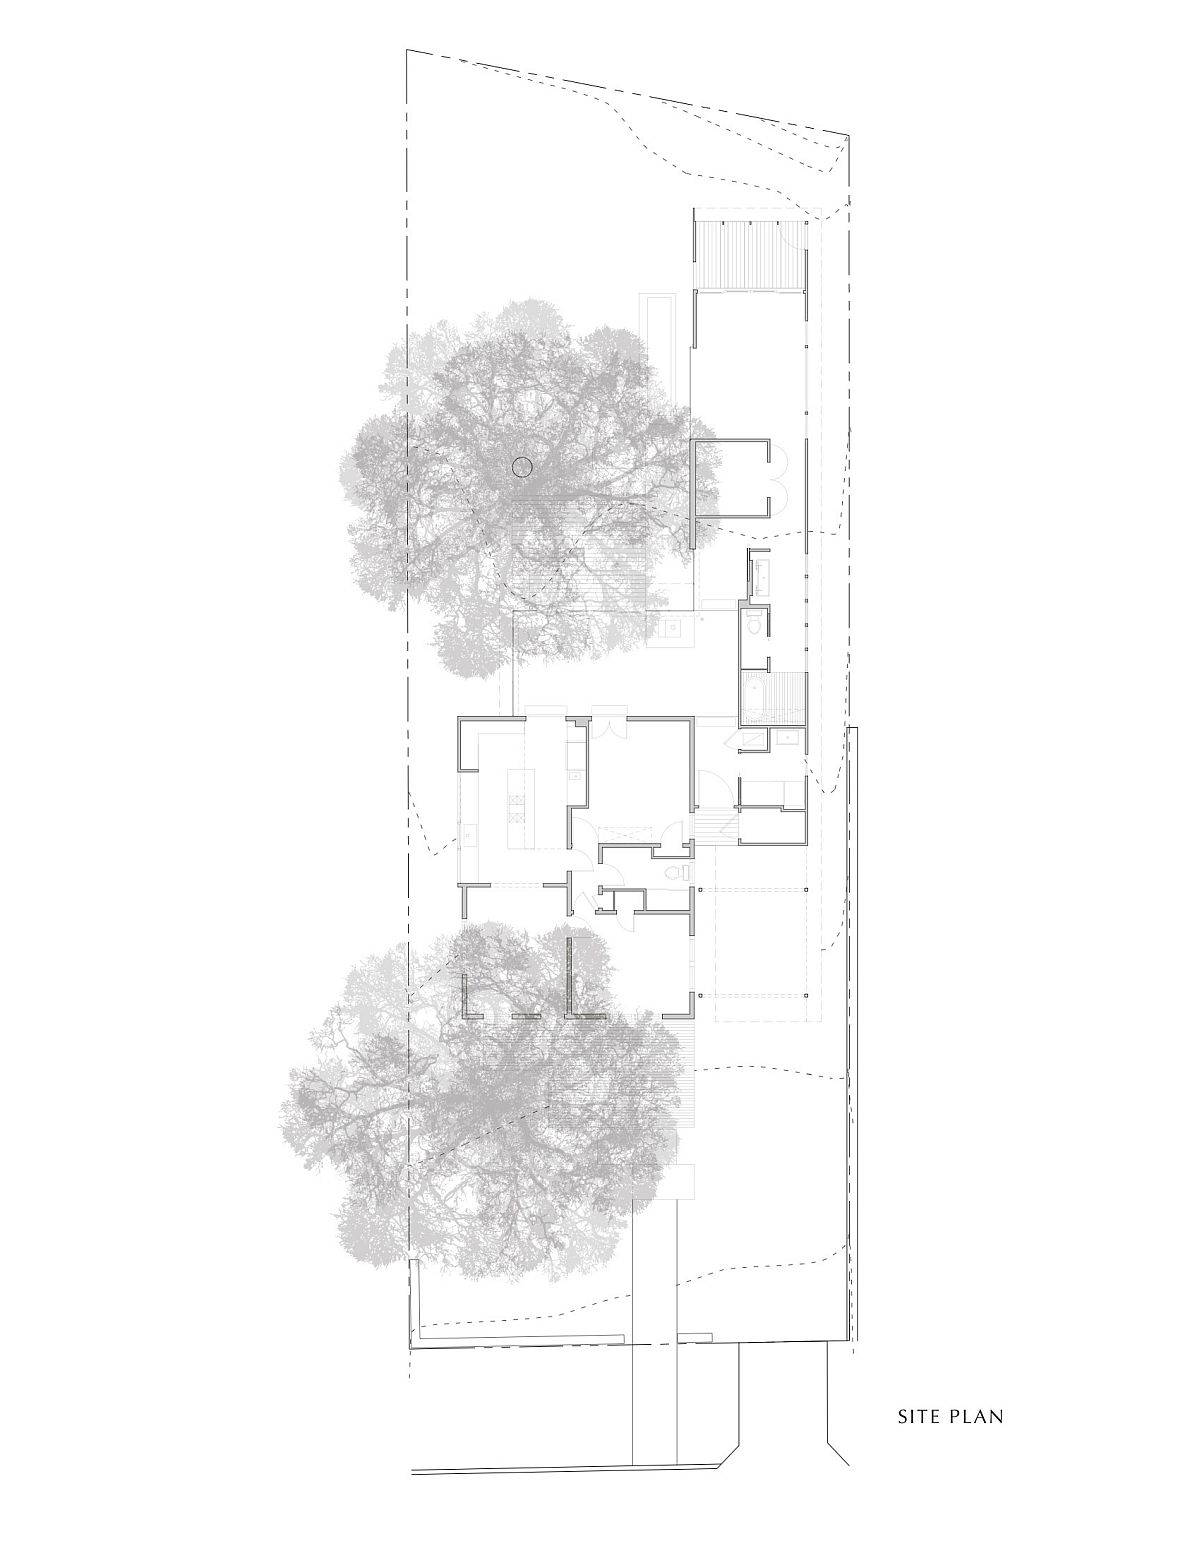 Siteplan of the revamped cottaege in Texas by Nick Deaver Architect